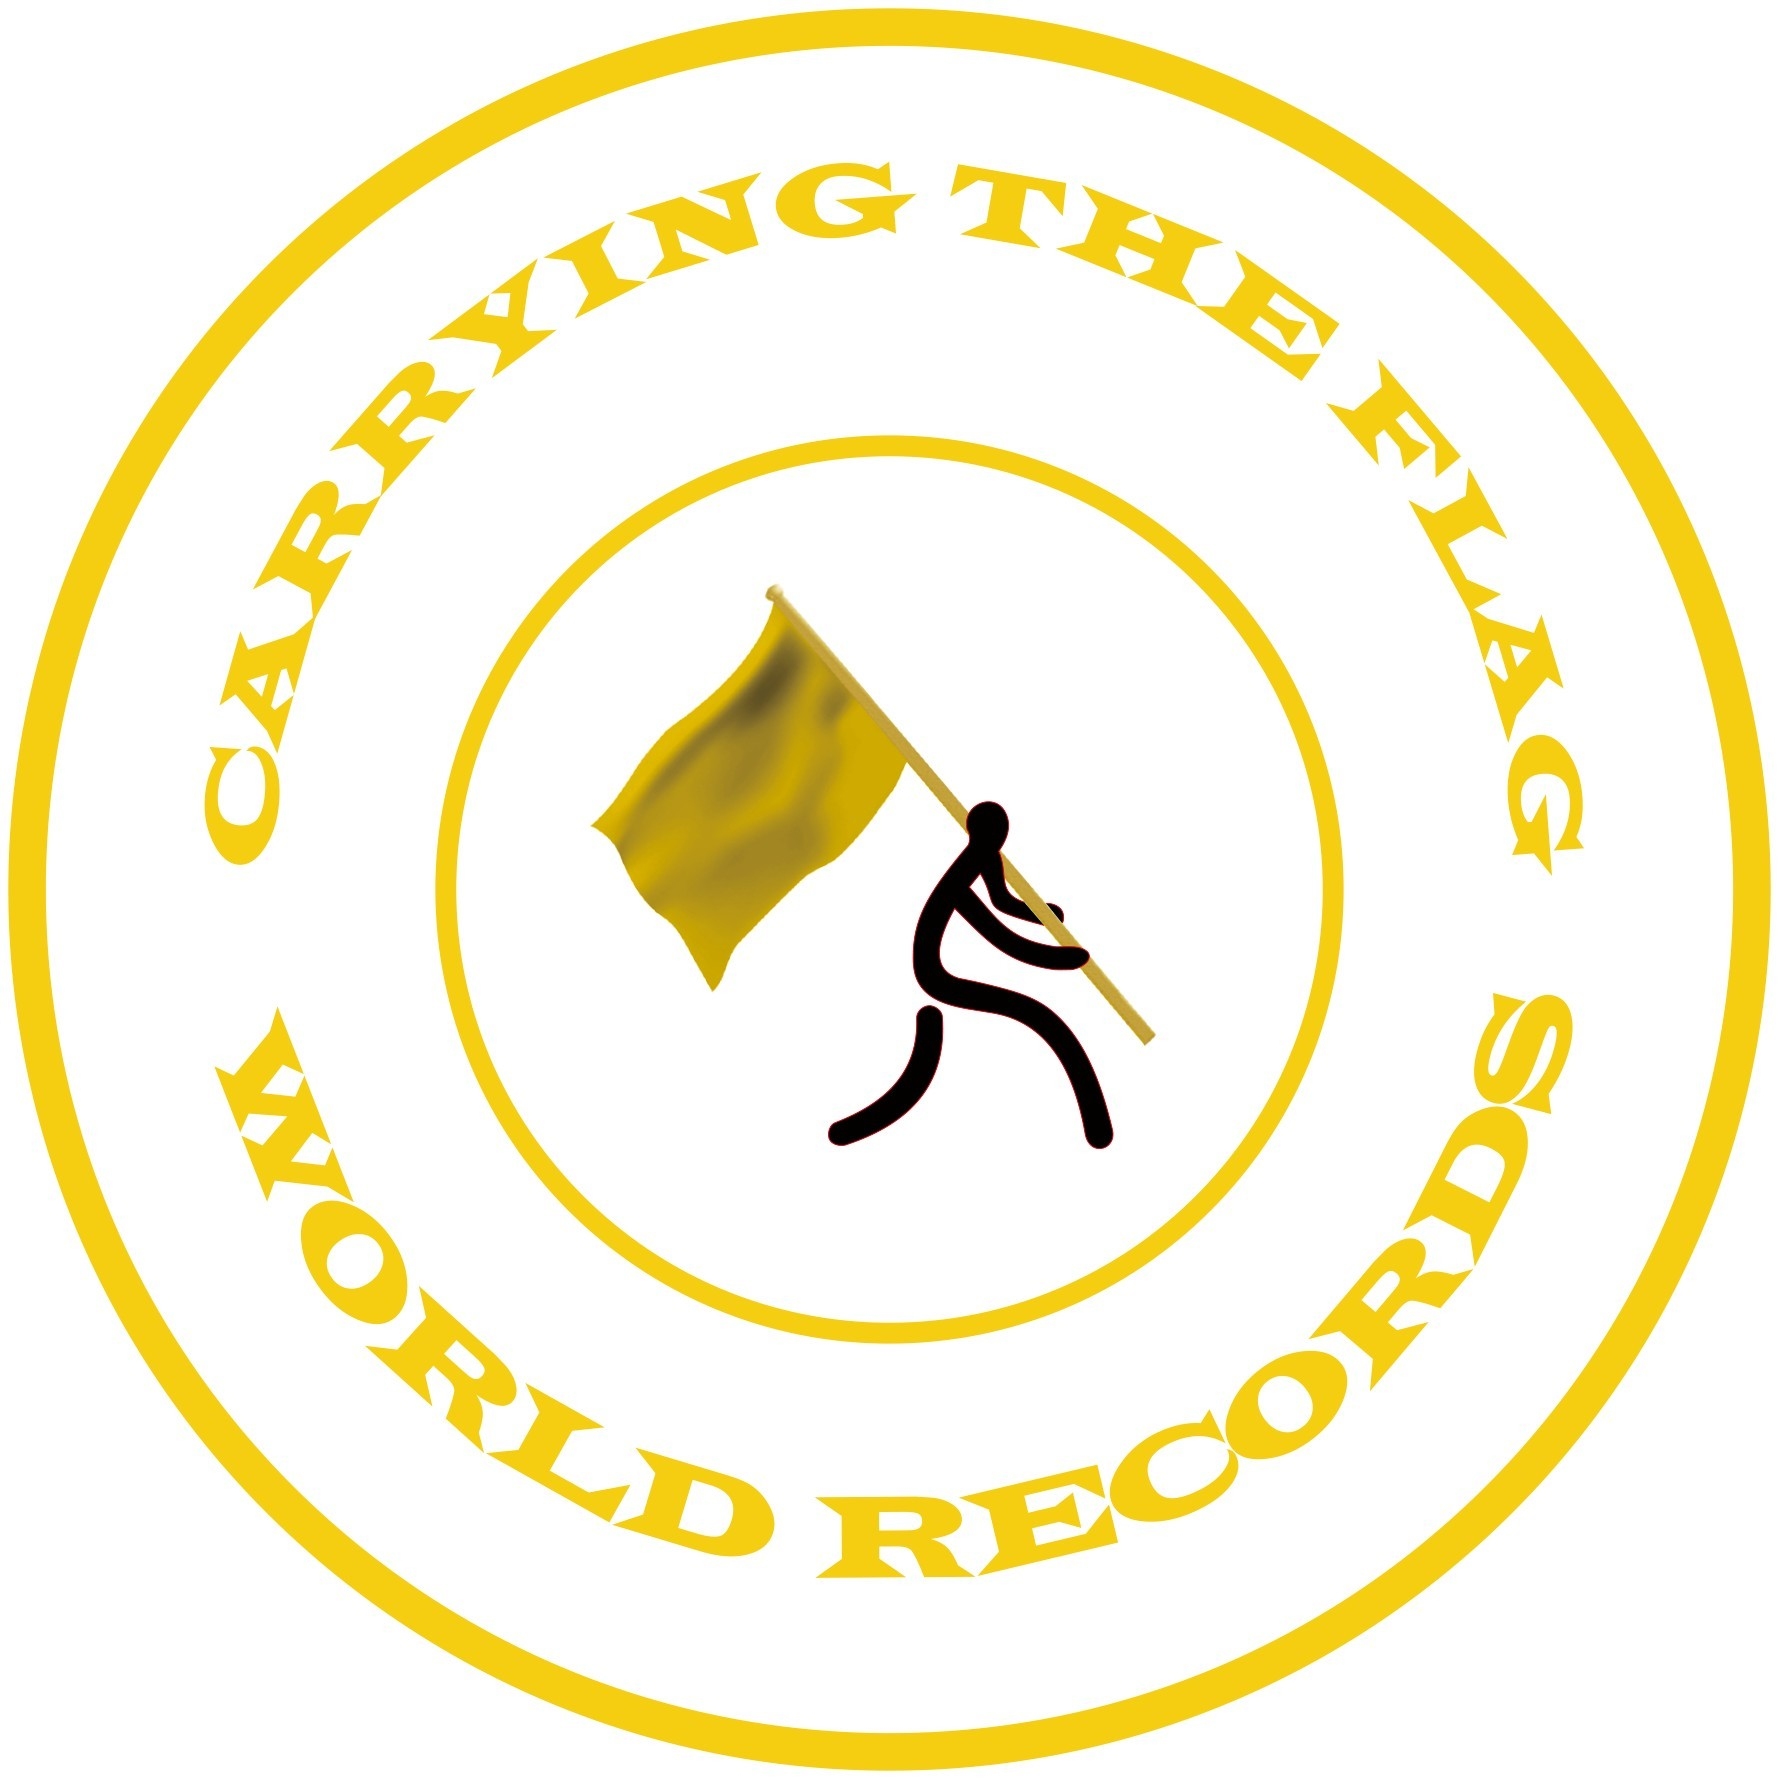 Carrying The Flag World Record Copyright Certificate: Guo Zuo Deng Zi-2017-F- 00439953